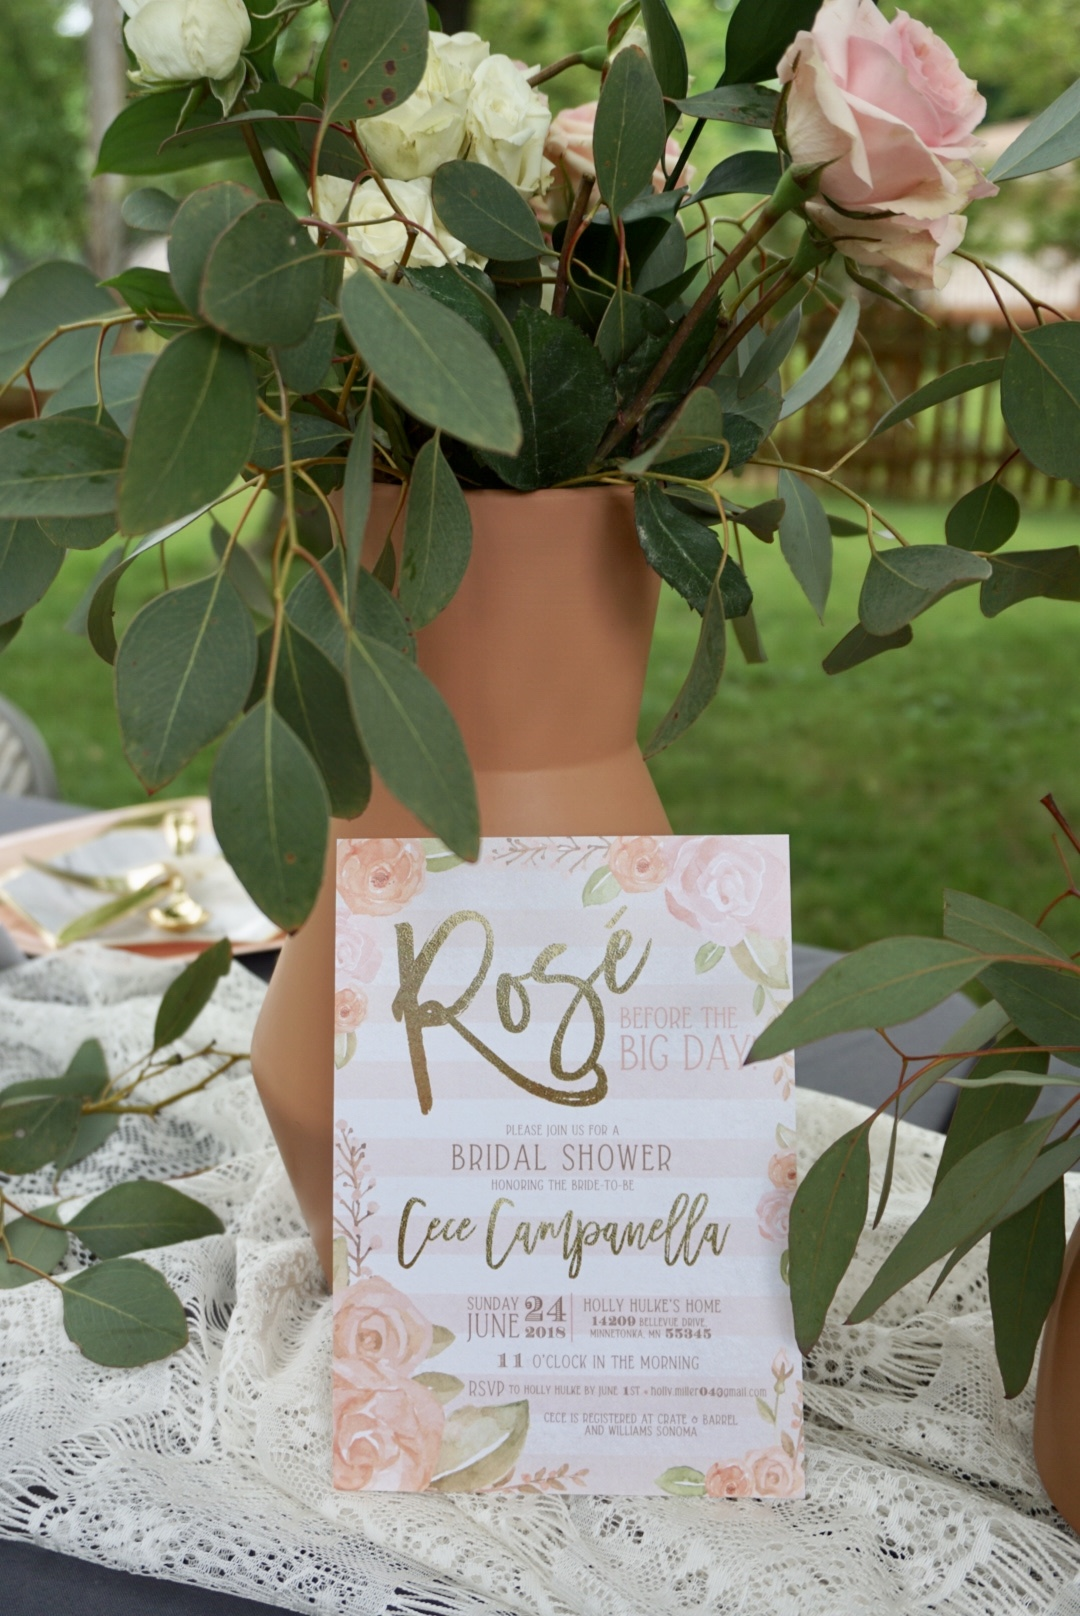 Rosé Before the Big Day bridal shower invitation